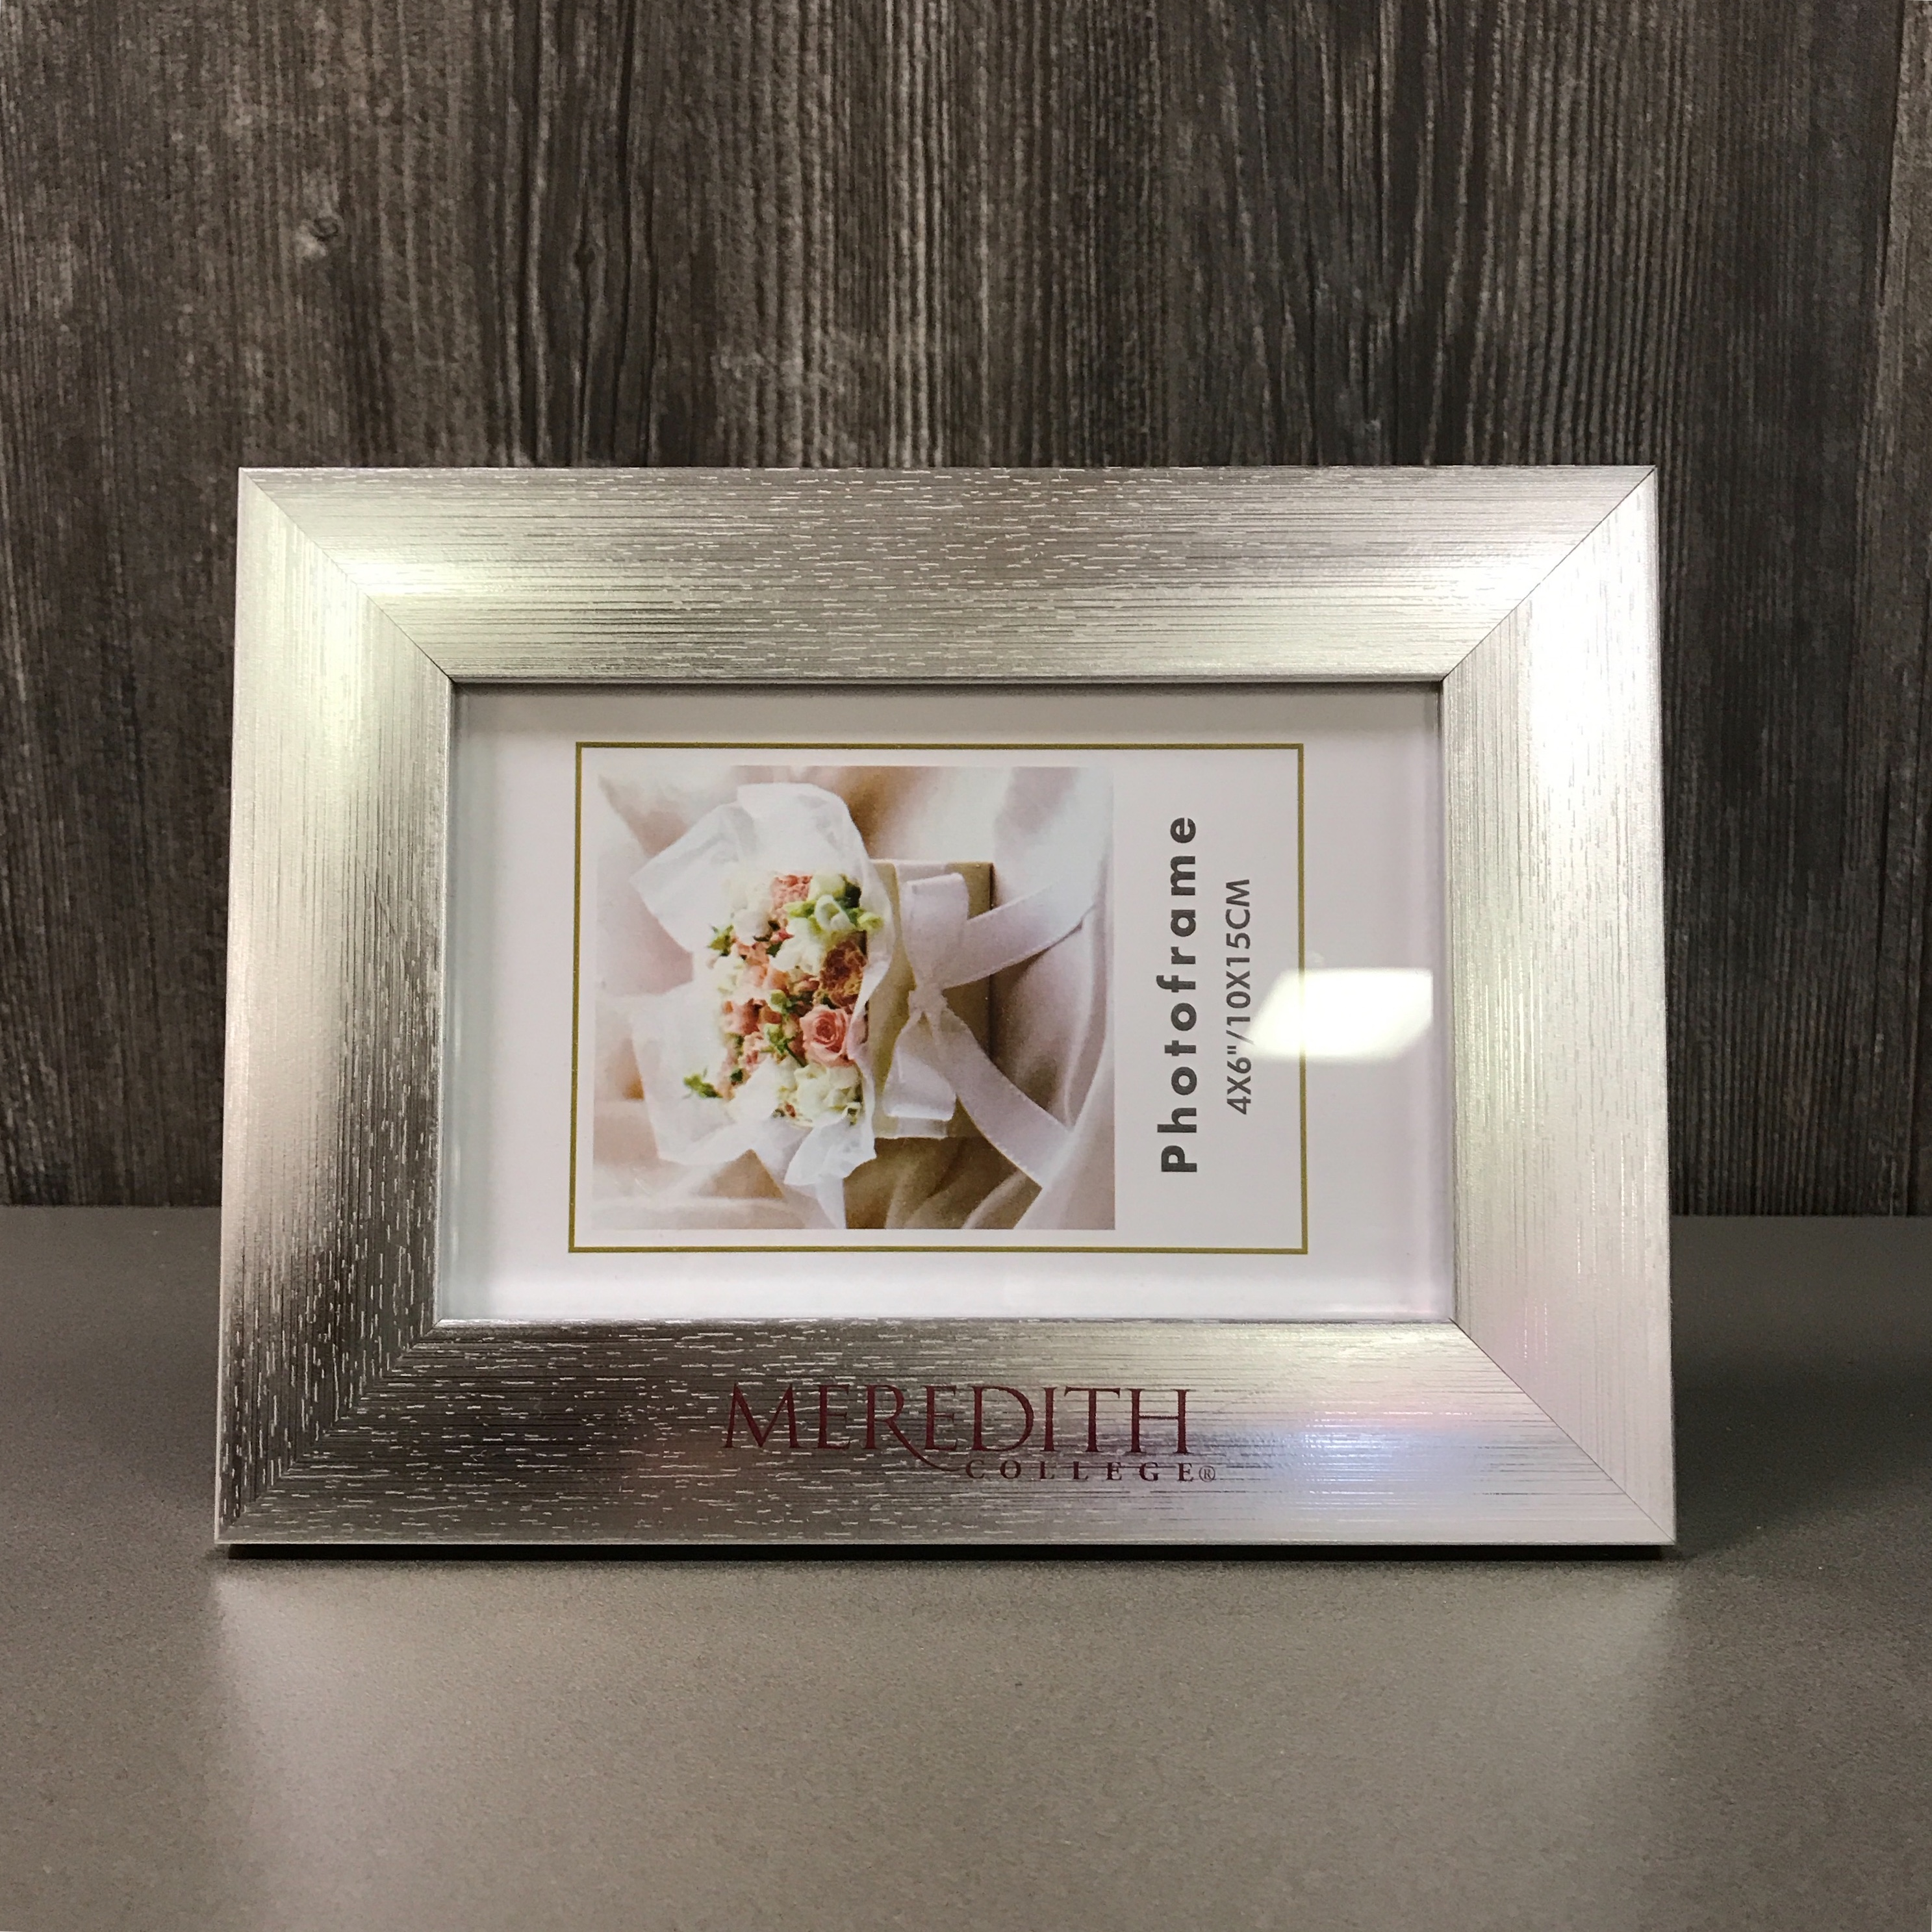 Image for the Picture Frame, Meredith College Logo product